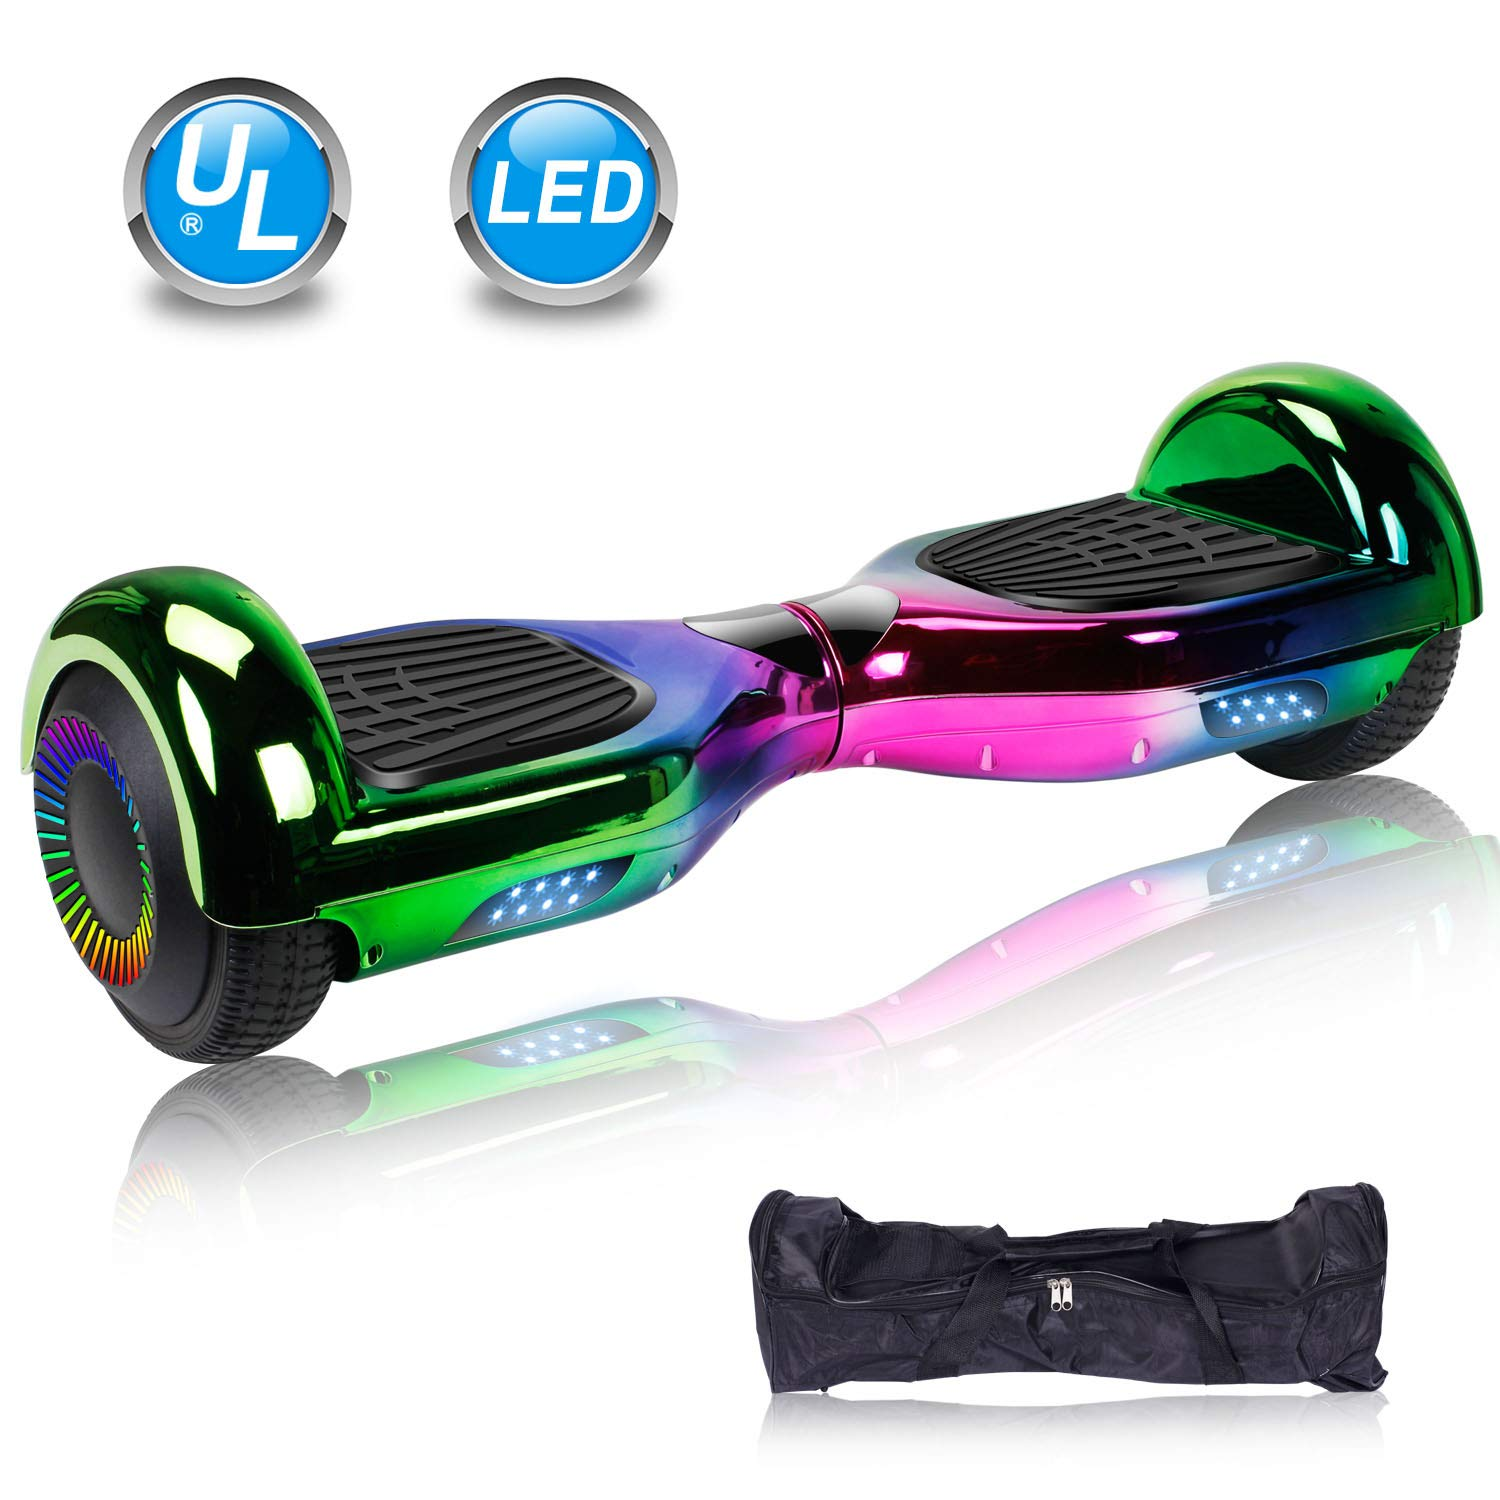 UNI-SUN 6.5'' Hoverboard for Kids, Two Wheel Self Balancing Electric Scooter, Hoverboard with LED Lights for Adults, UL 2272 Certified Hover Board(Classic Chrome 3Colors)